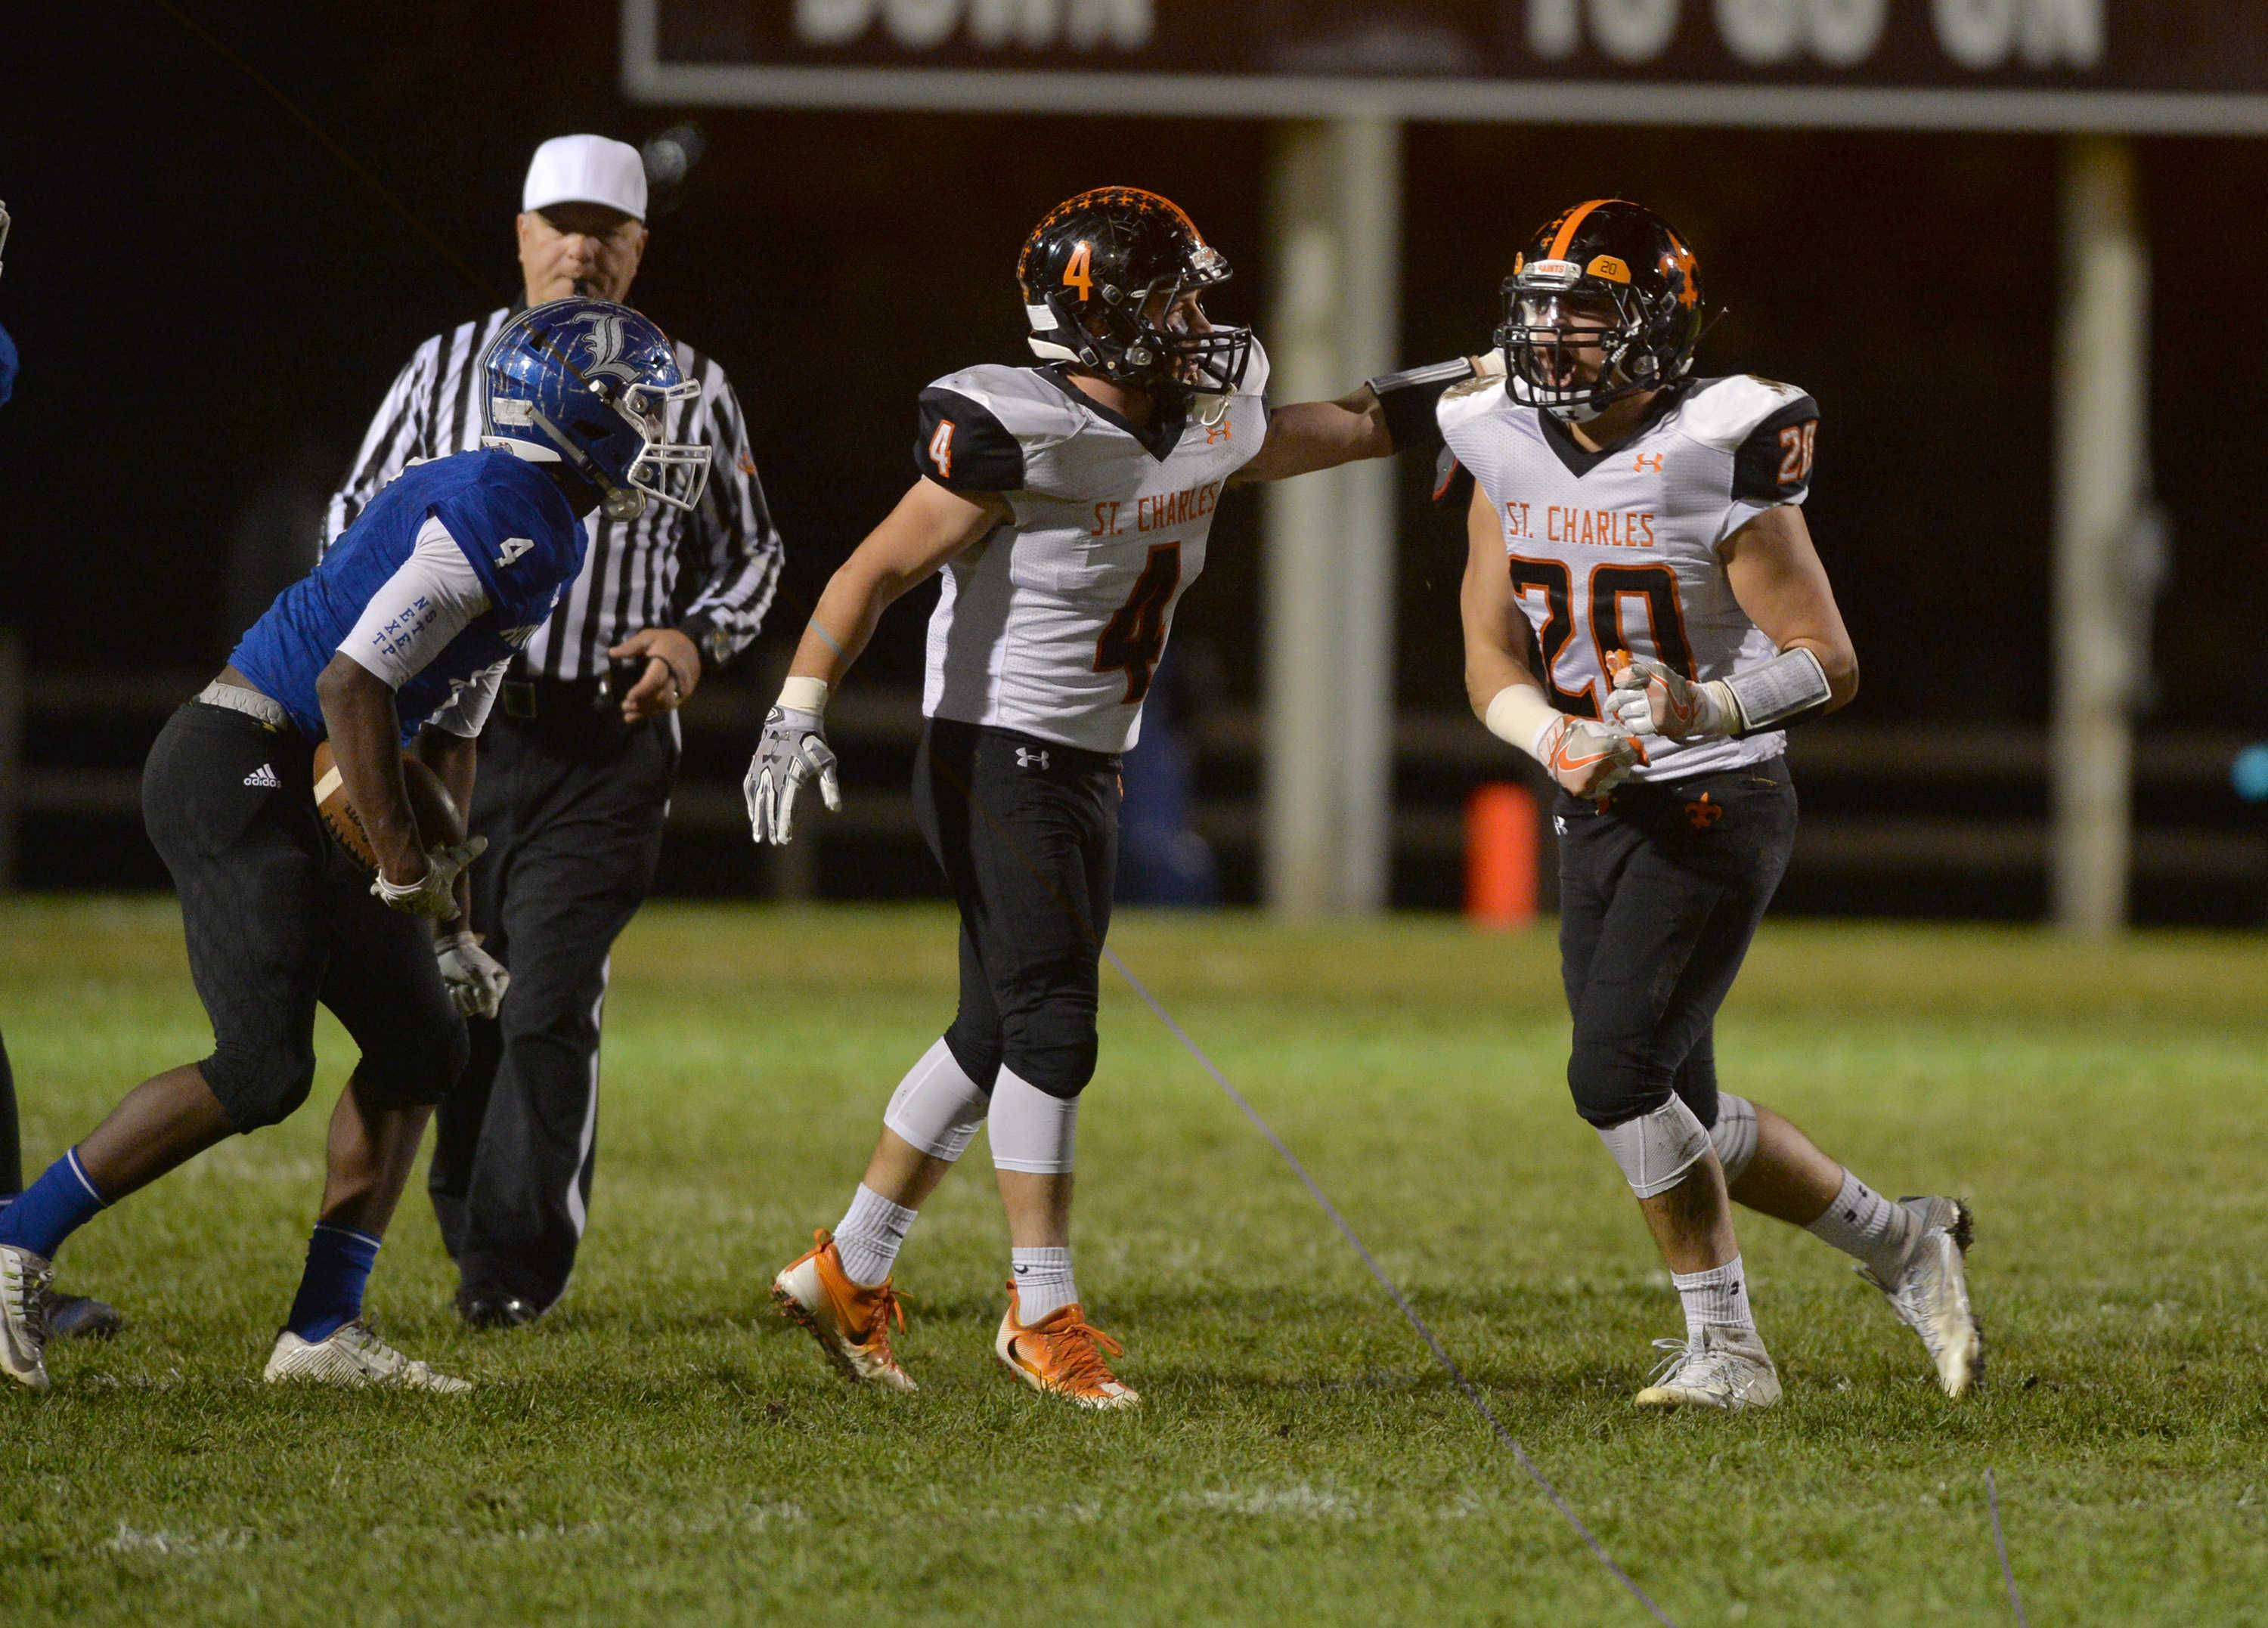 St. Charles East linebackers Nicholas Piaskowy and Abe Swanson celebrate after stopping Larkin running back DJ Ball in the second quarter of their Upstate Eight River contest Friday night at Memorial Field in Elgin.